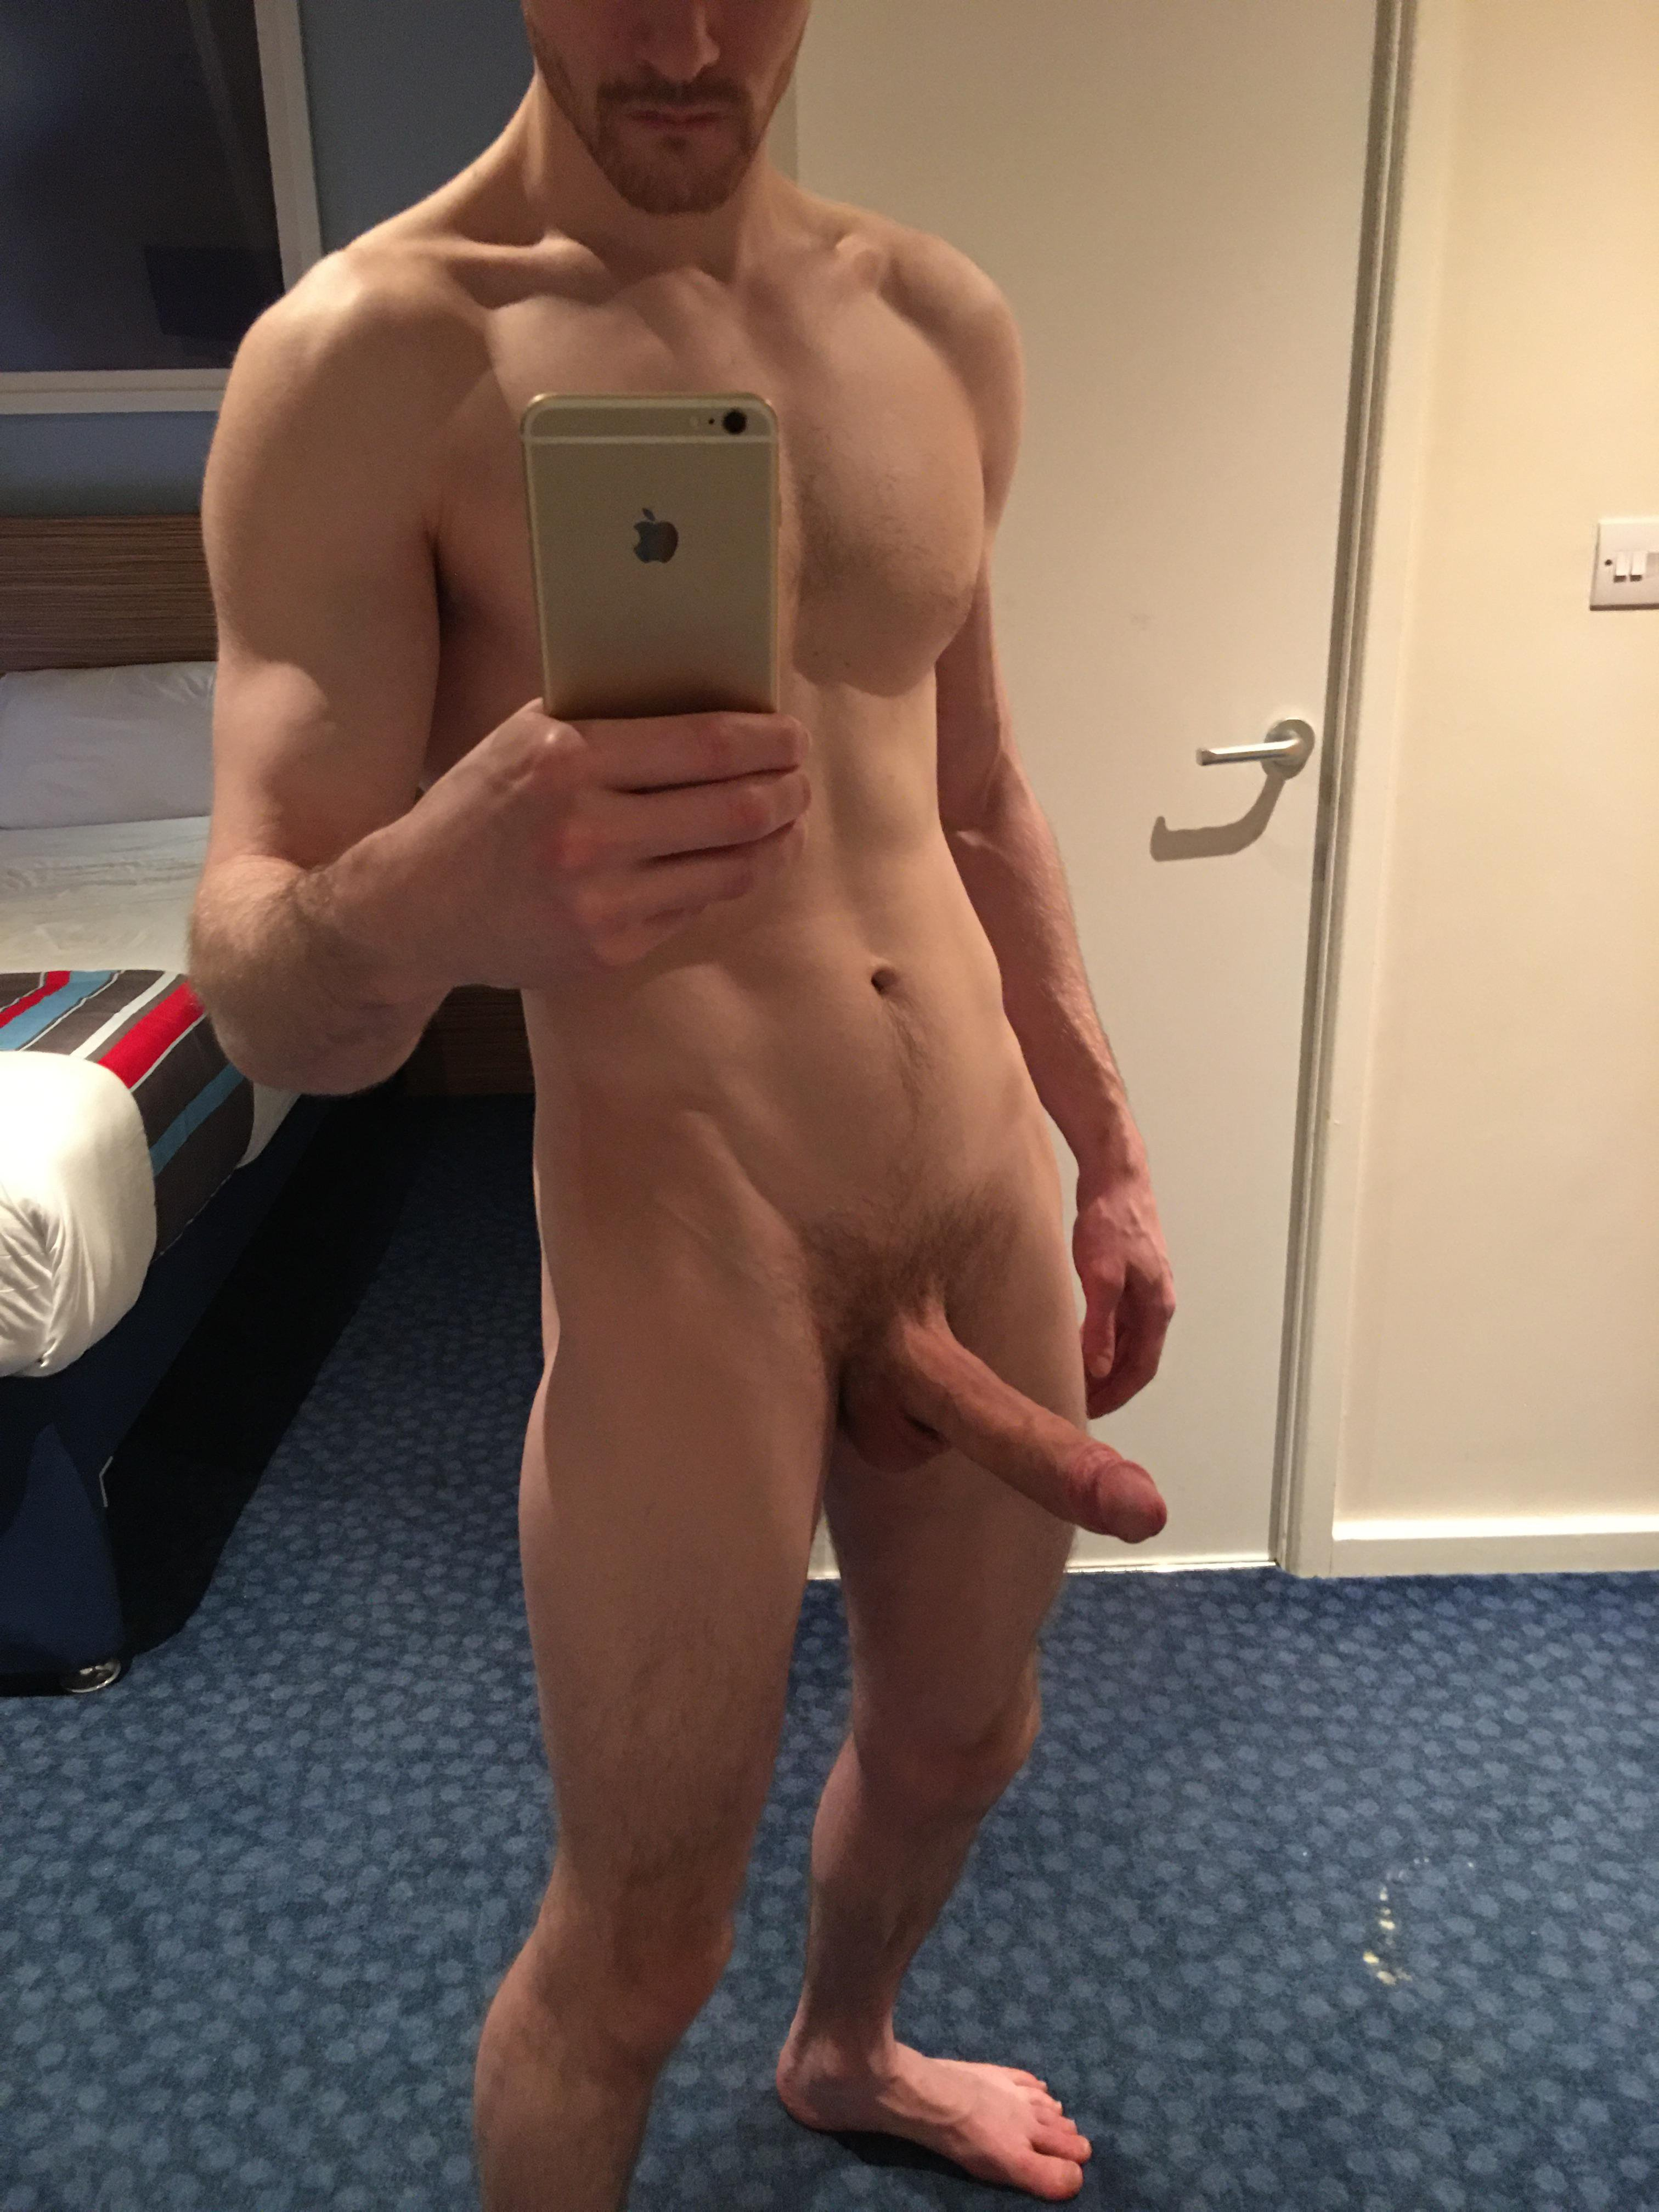 mirror-pics-of-guys-naked-pussy-high-res